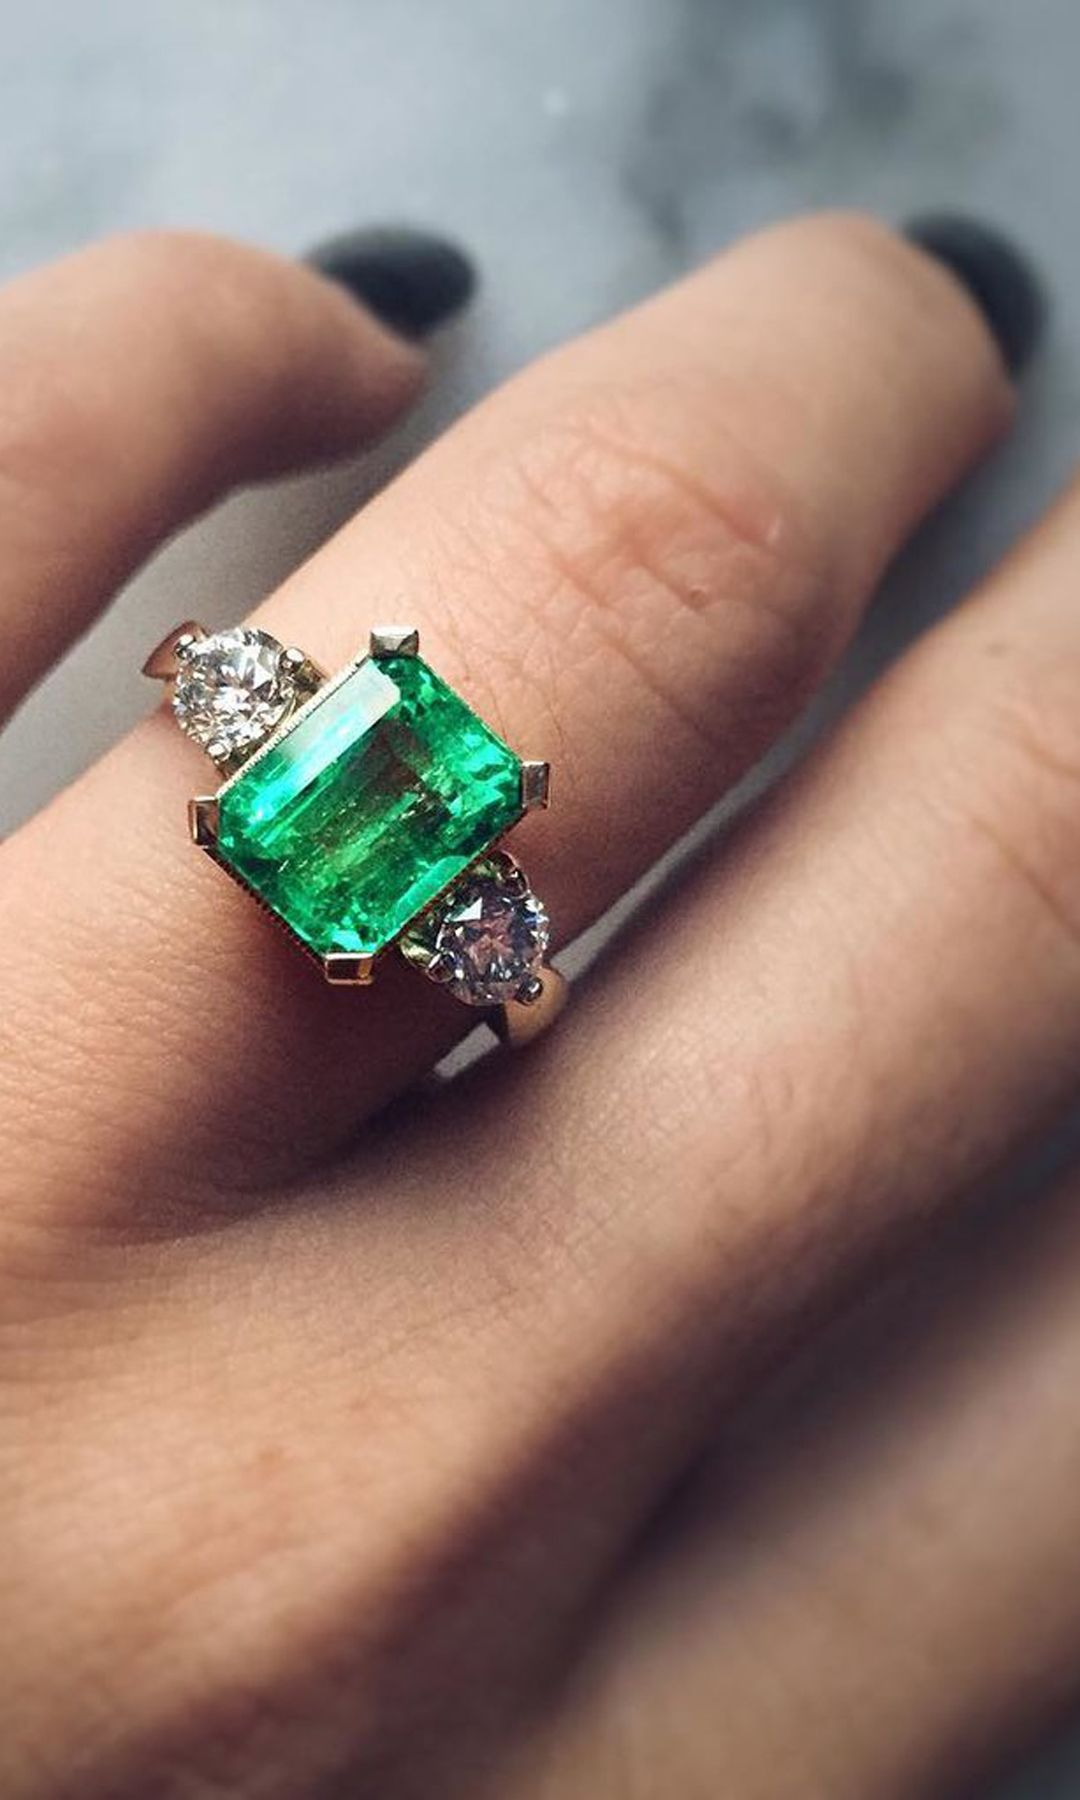 silver engagement bling cut style ring vintage par cz jewelry emerald mdr